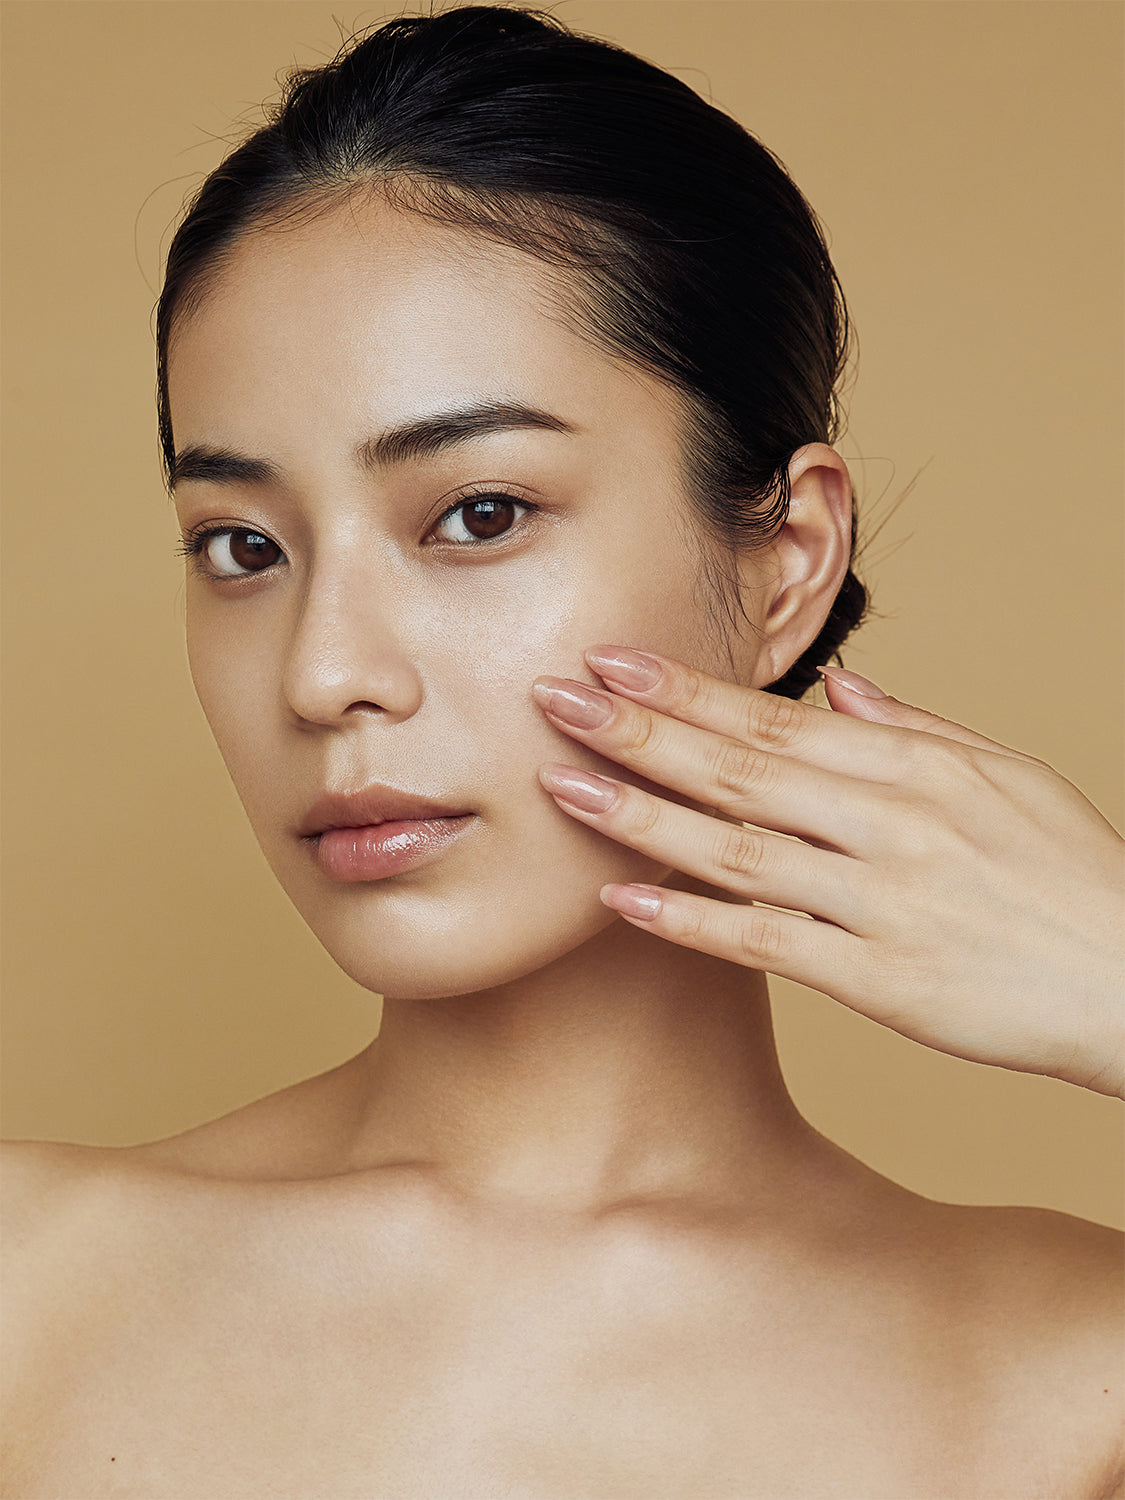 look younger than your age with cell forte skin care serum and cream